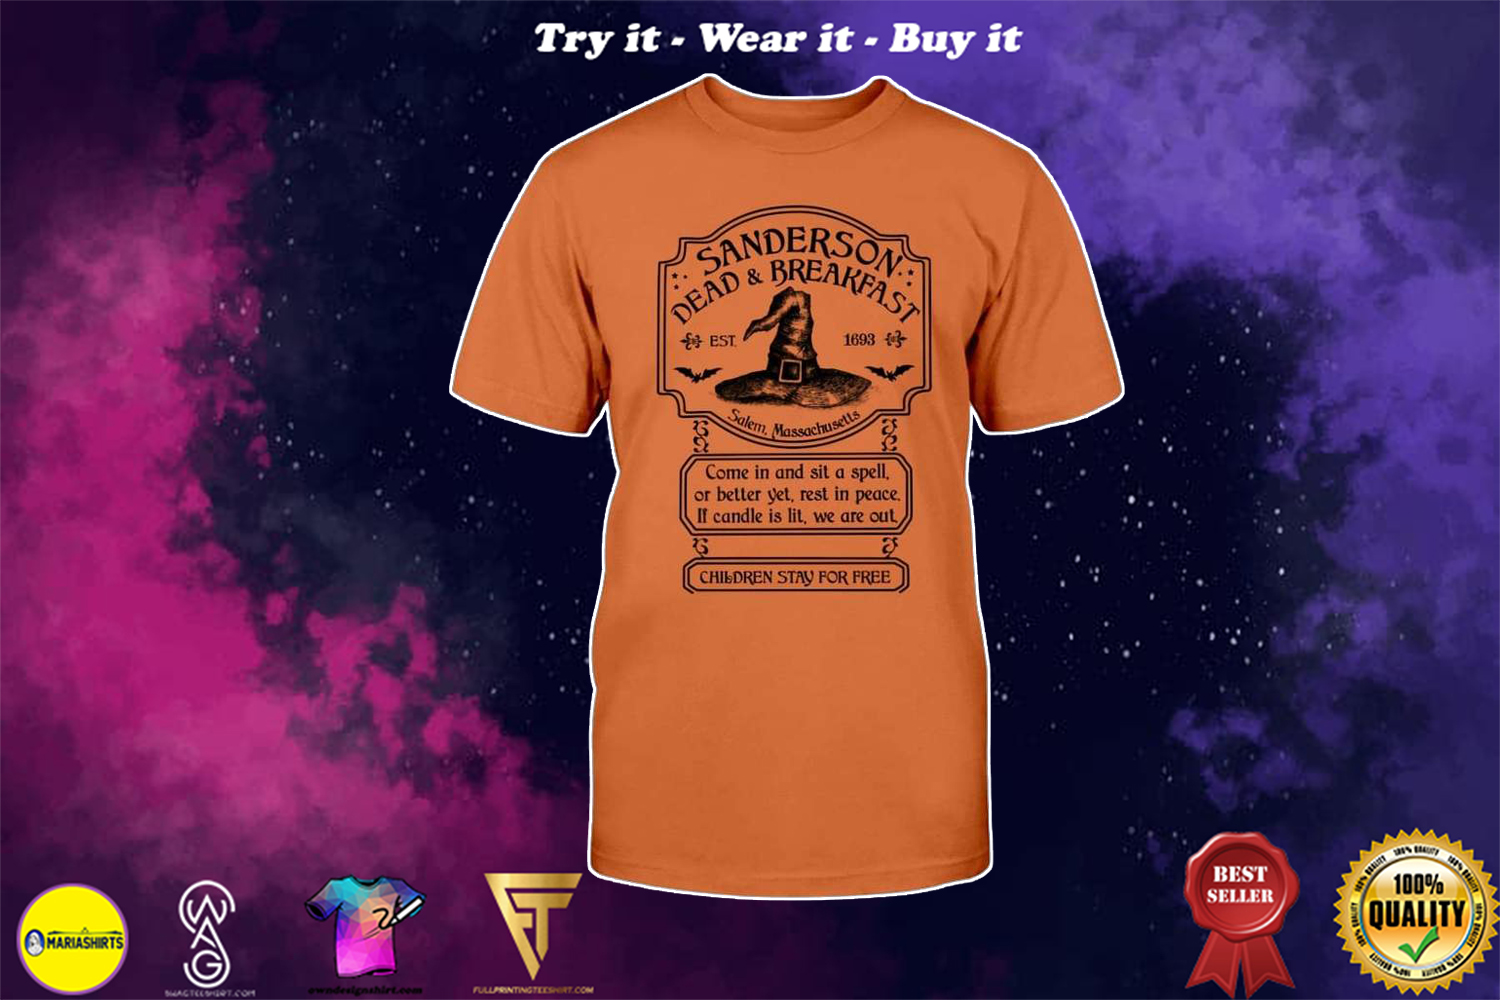 [special edition] halloween sanderson dead and breakfast witch hat shirt - Maria